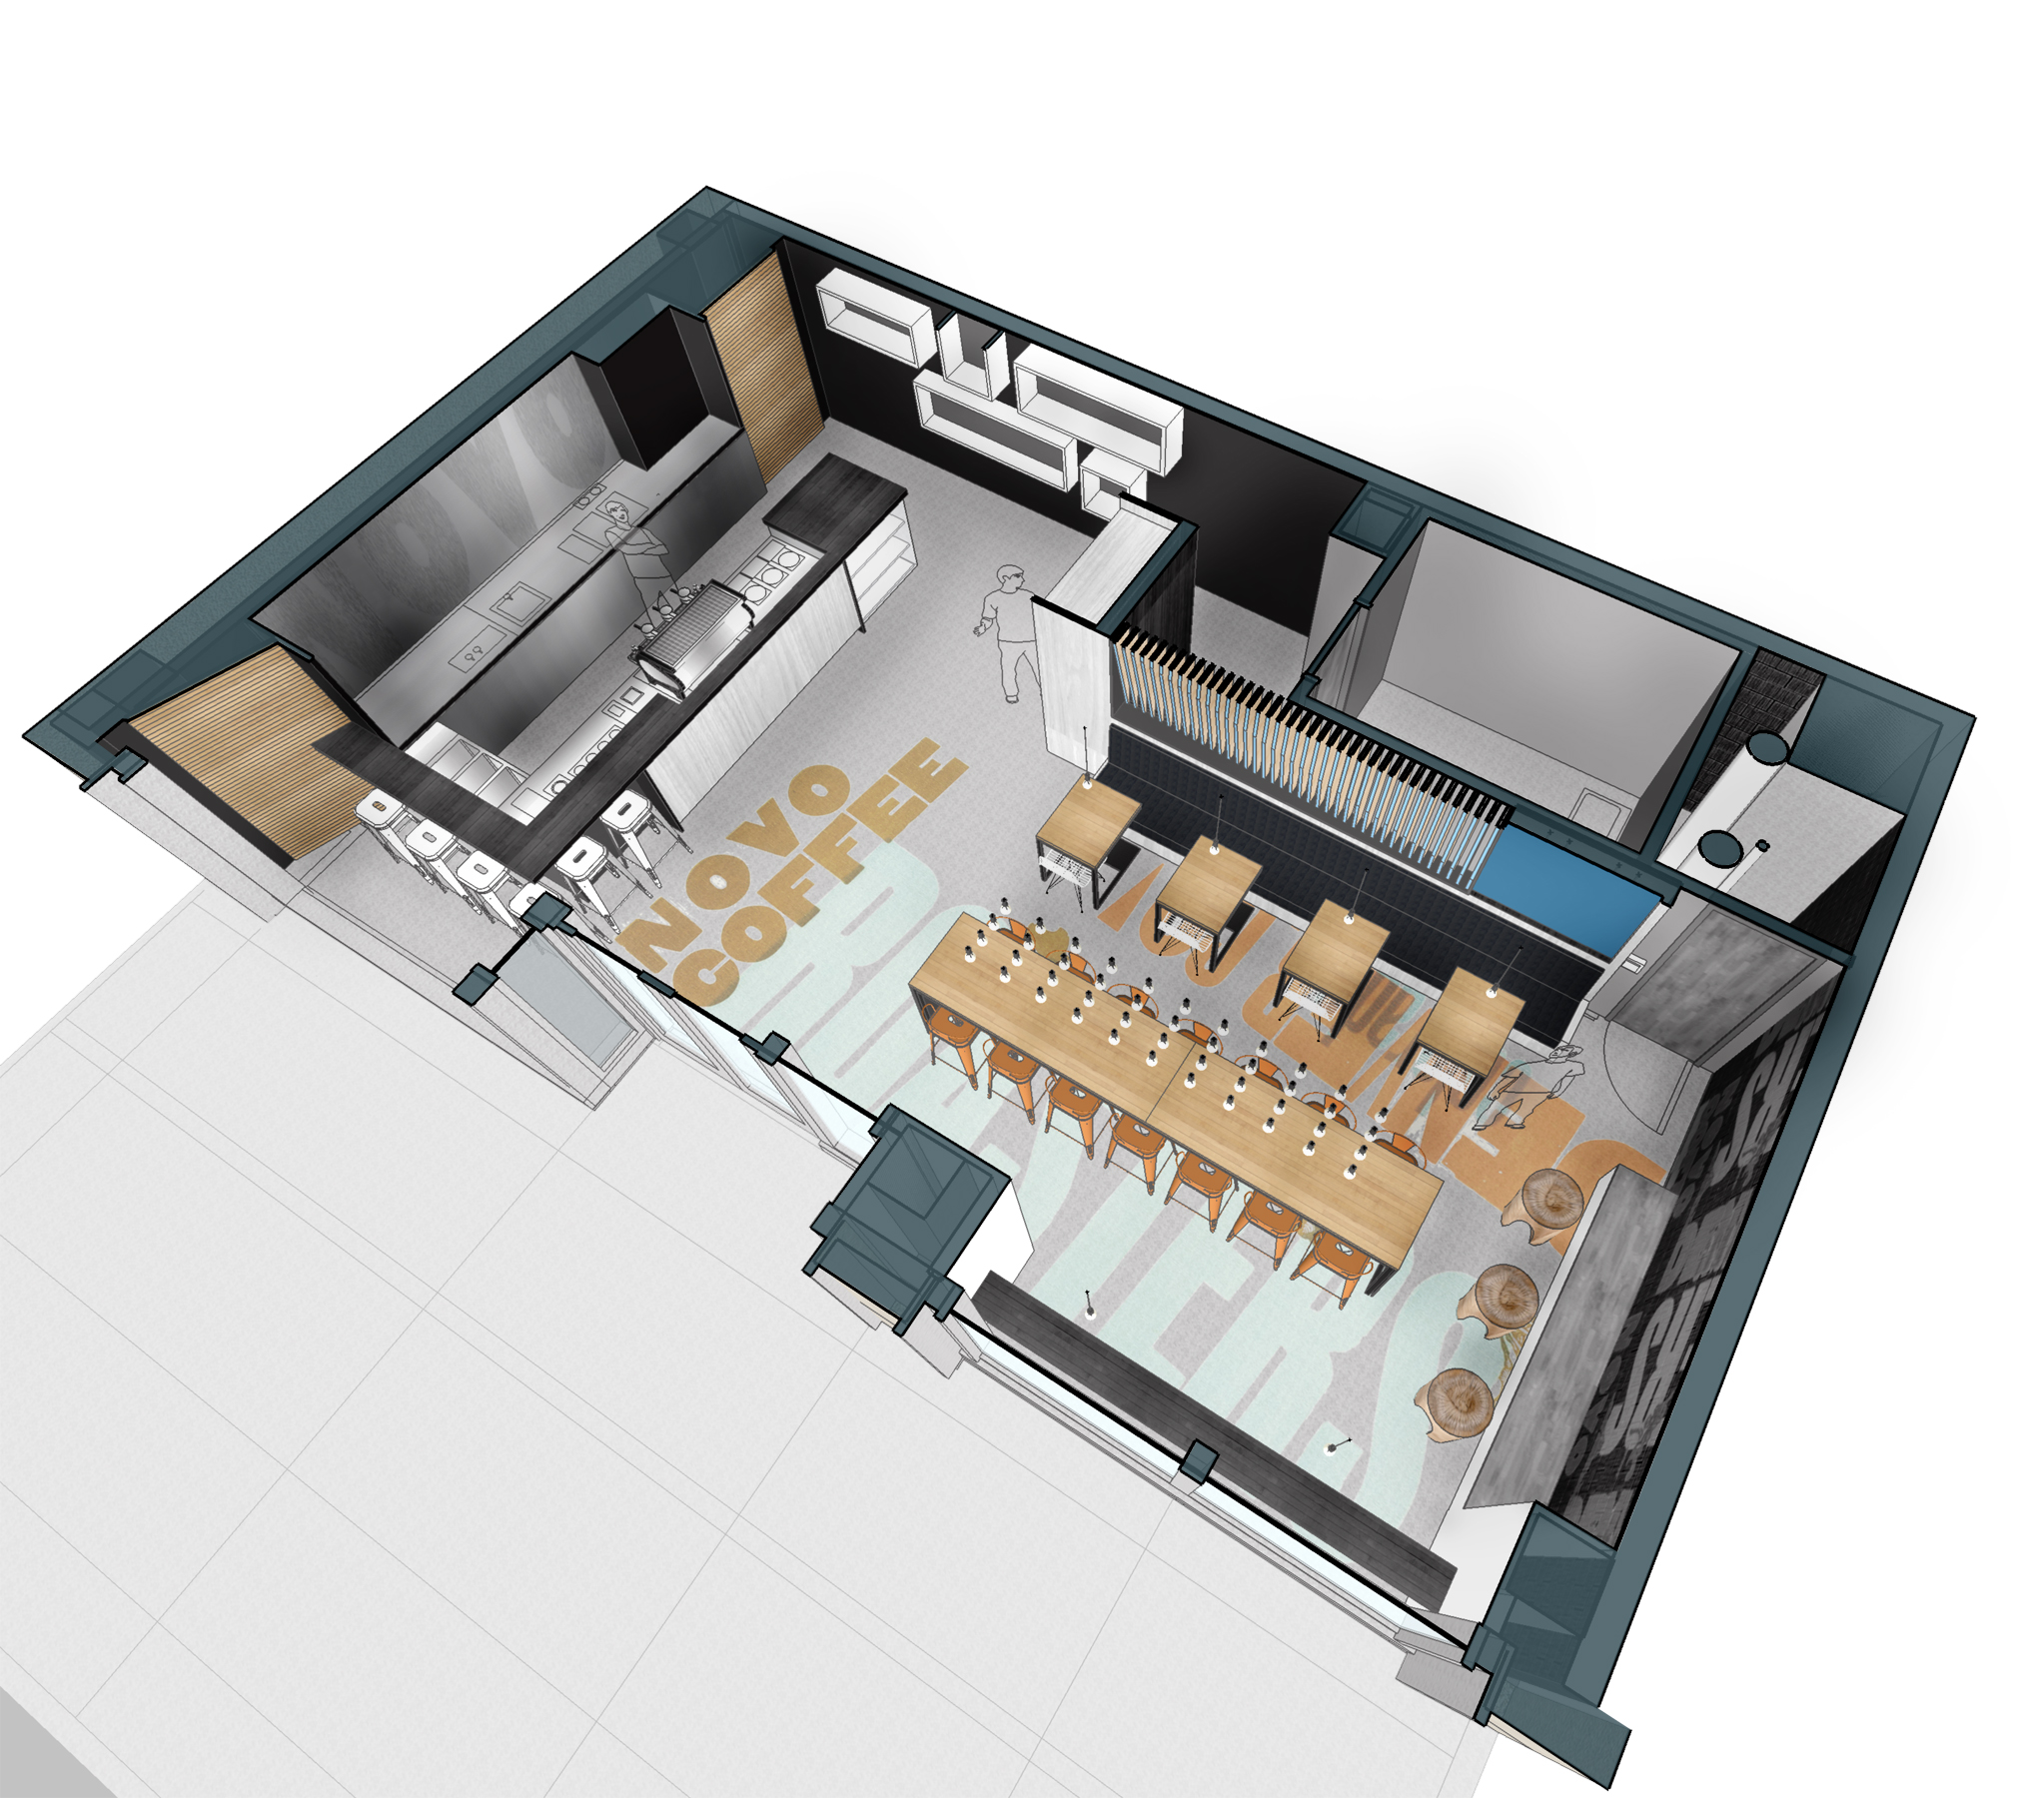 Novo Coffee shop 1600 Glenarm axo floorplan open studio architecture OSA